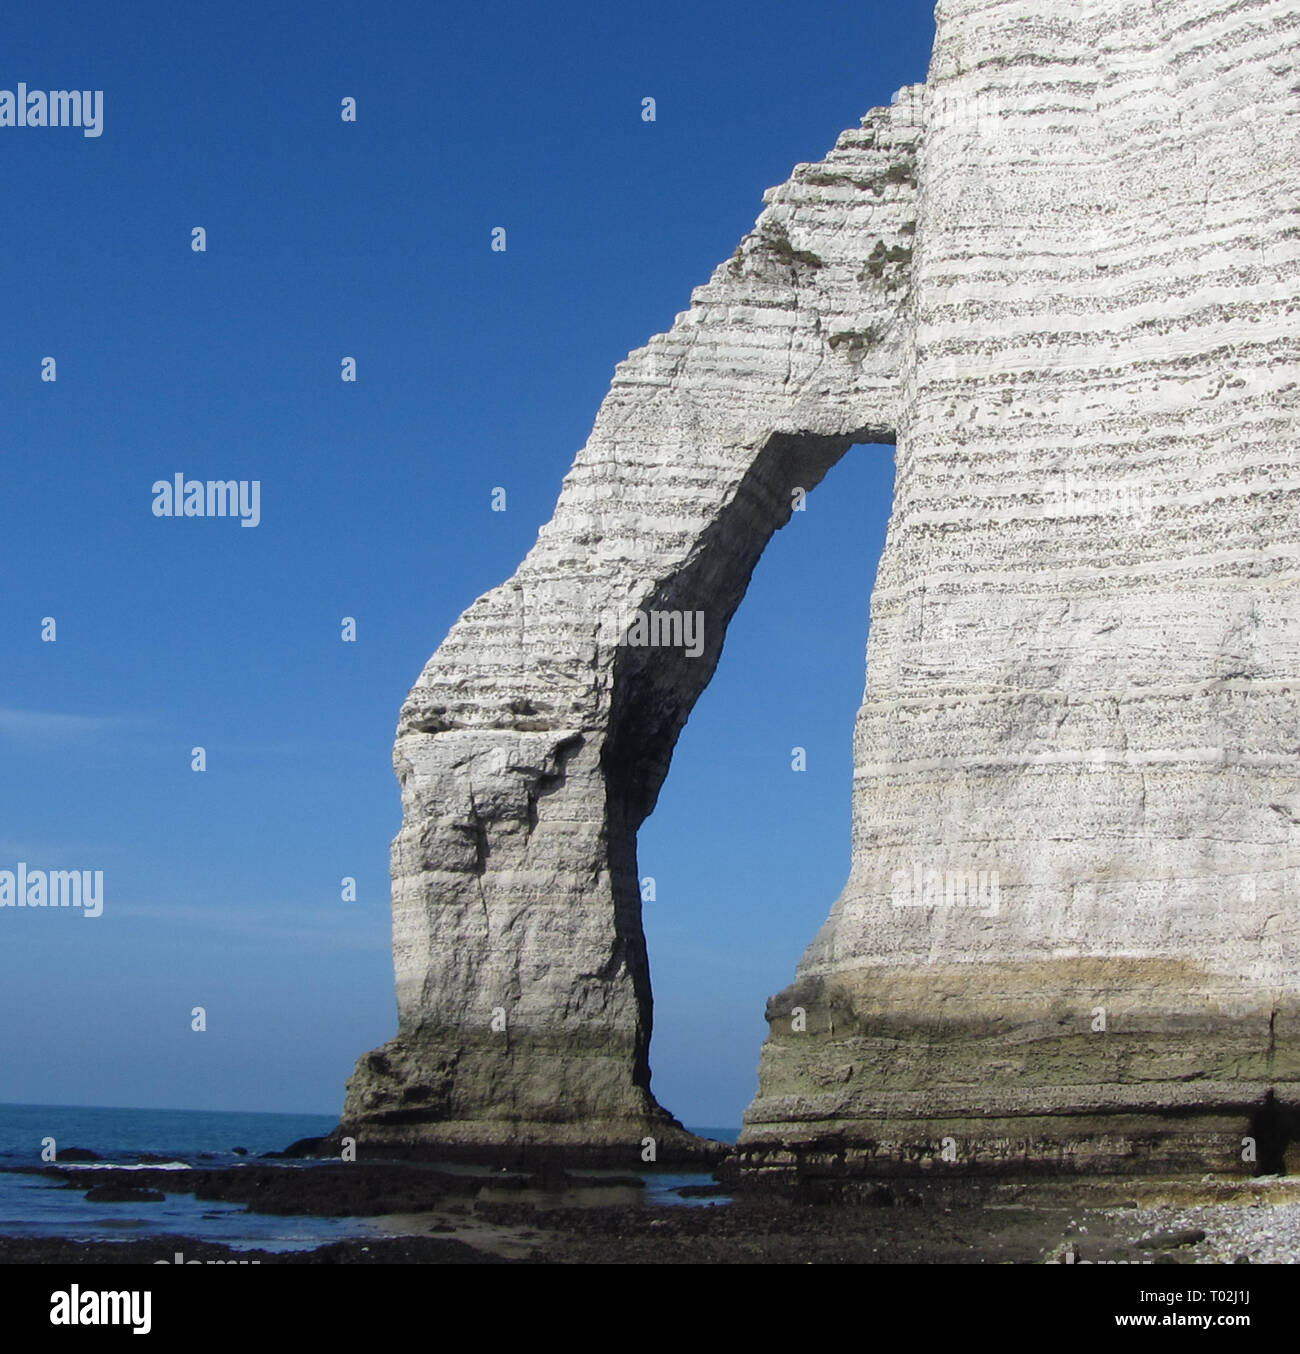 etretat france rocks occeoan cost landscape wallpaper - Stock Image